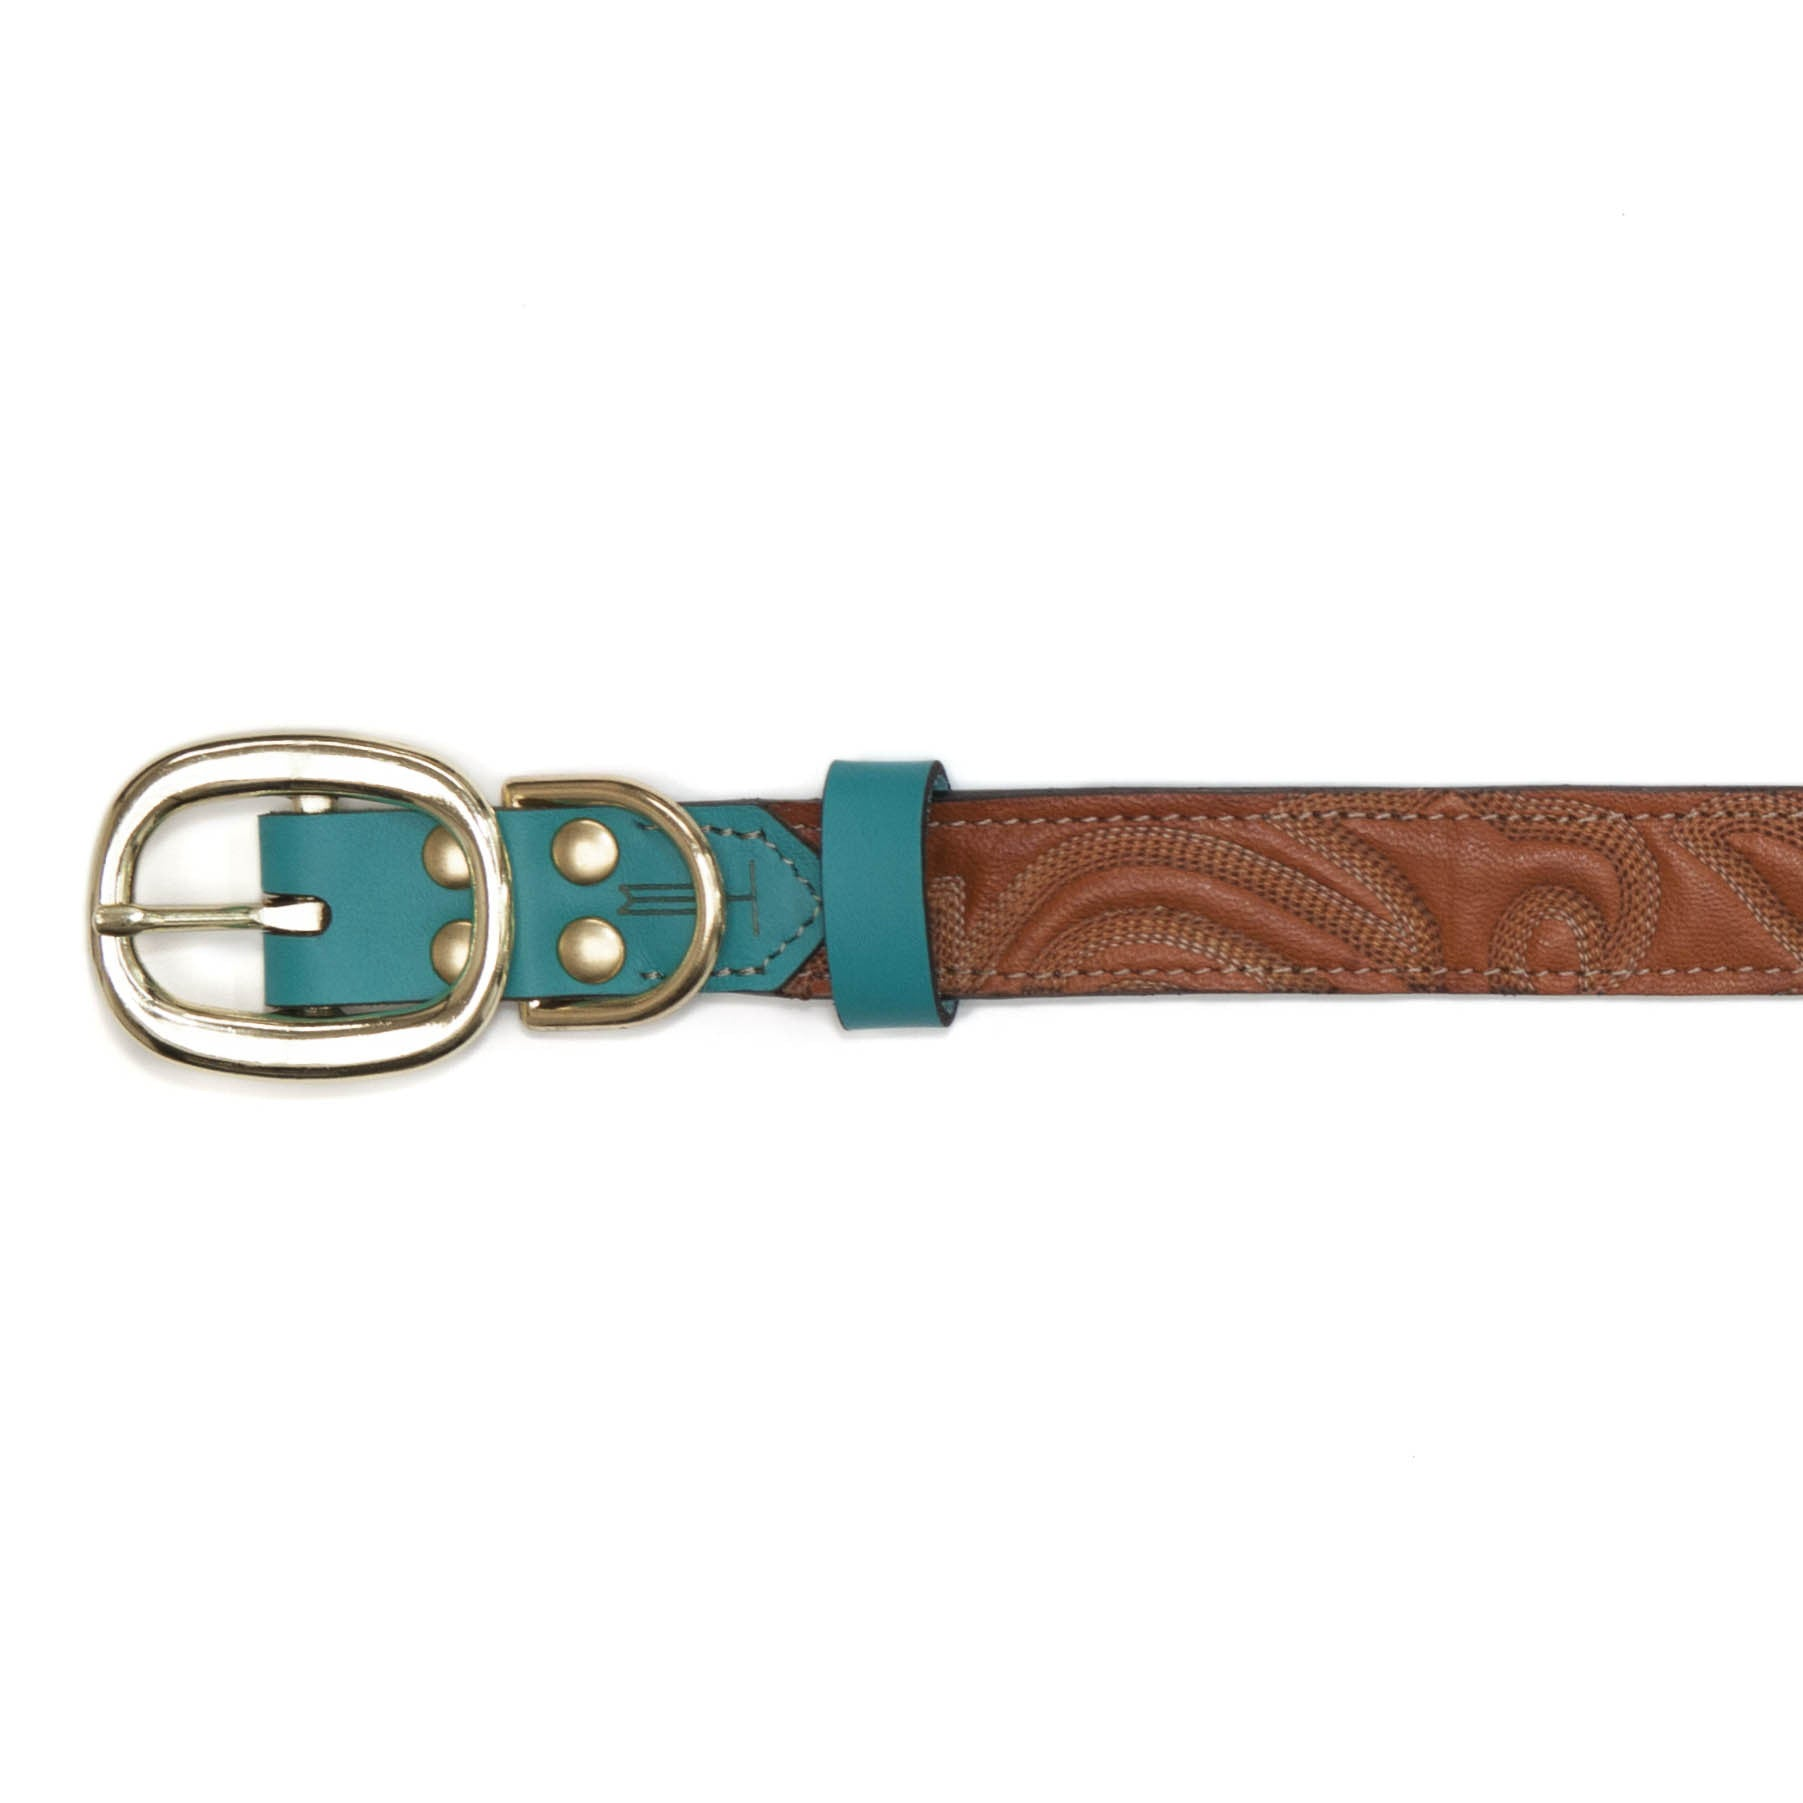 Turquoise Dog Collar with Brown Leather + Tan Stitching (buckle)